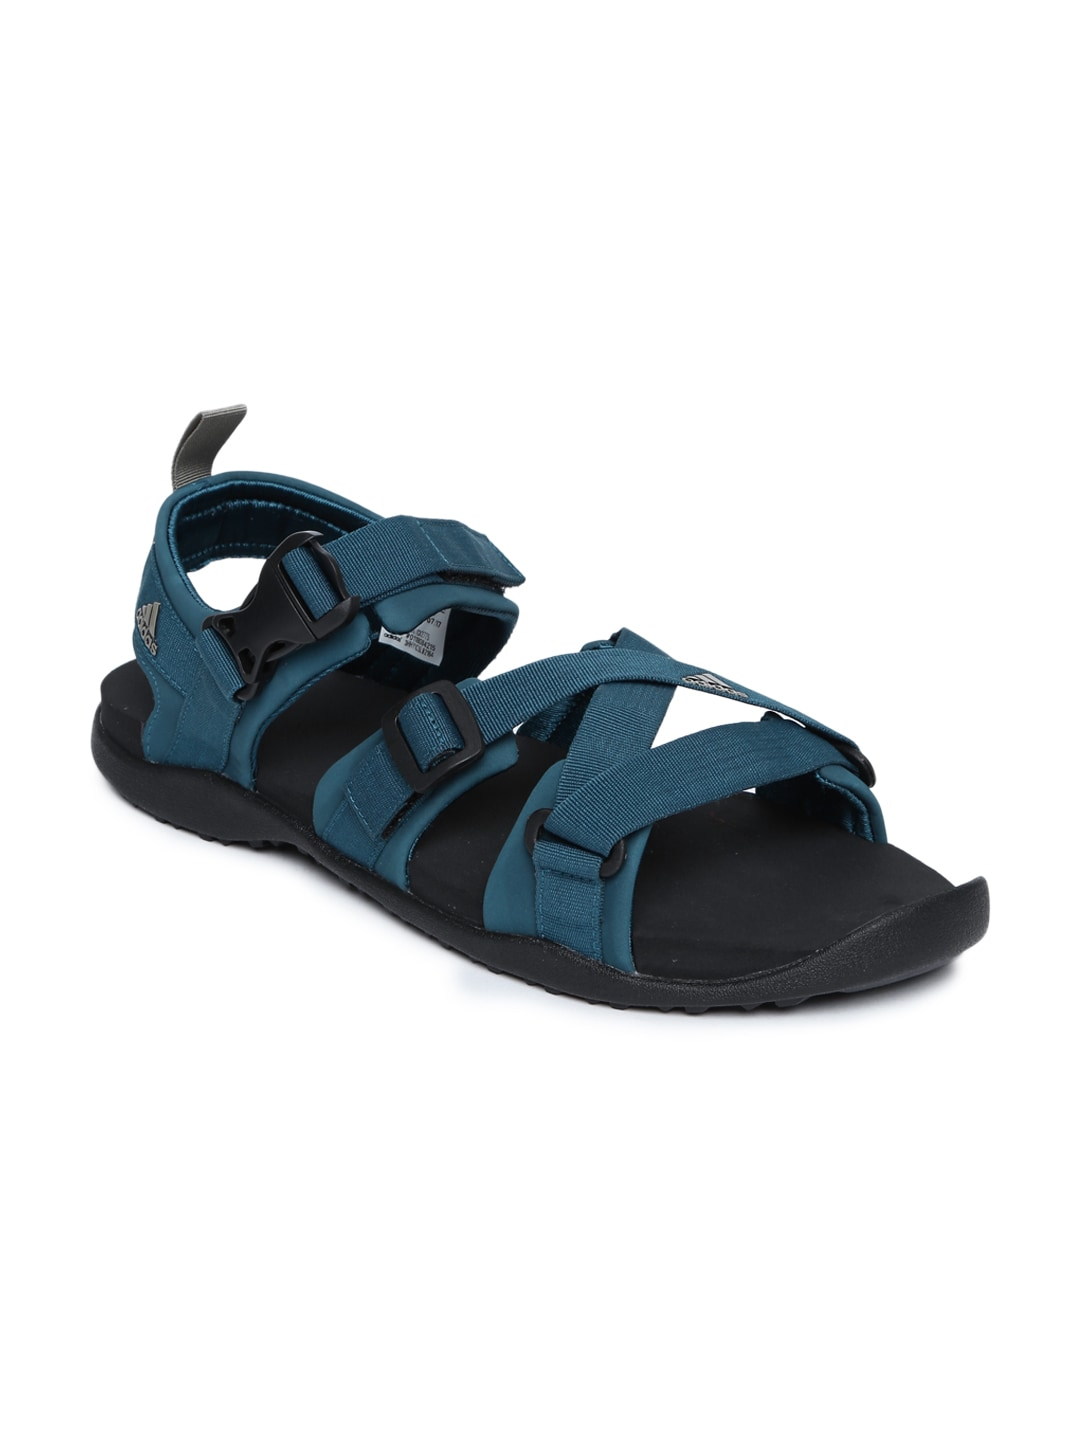 b4972f11fa22 Men Adidas Mufflers Sports Sandals - Buy Men Adidas Mufflers Sports Sandals  online in India